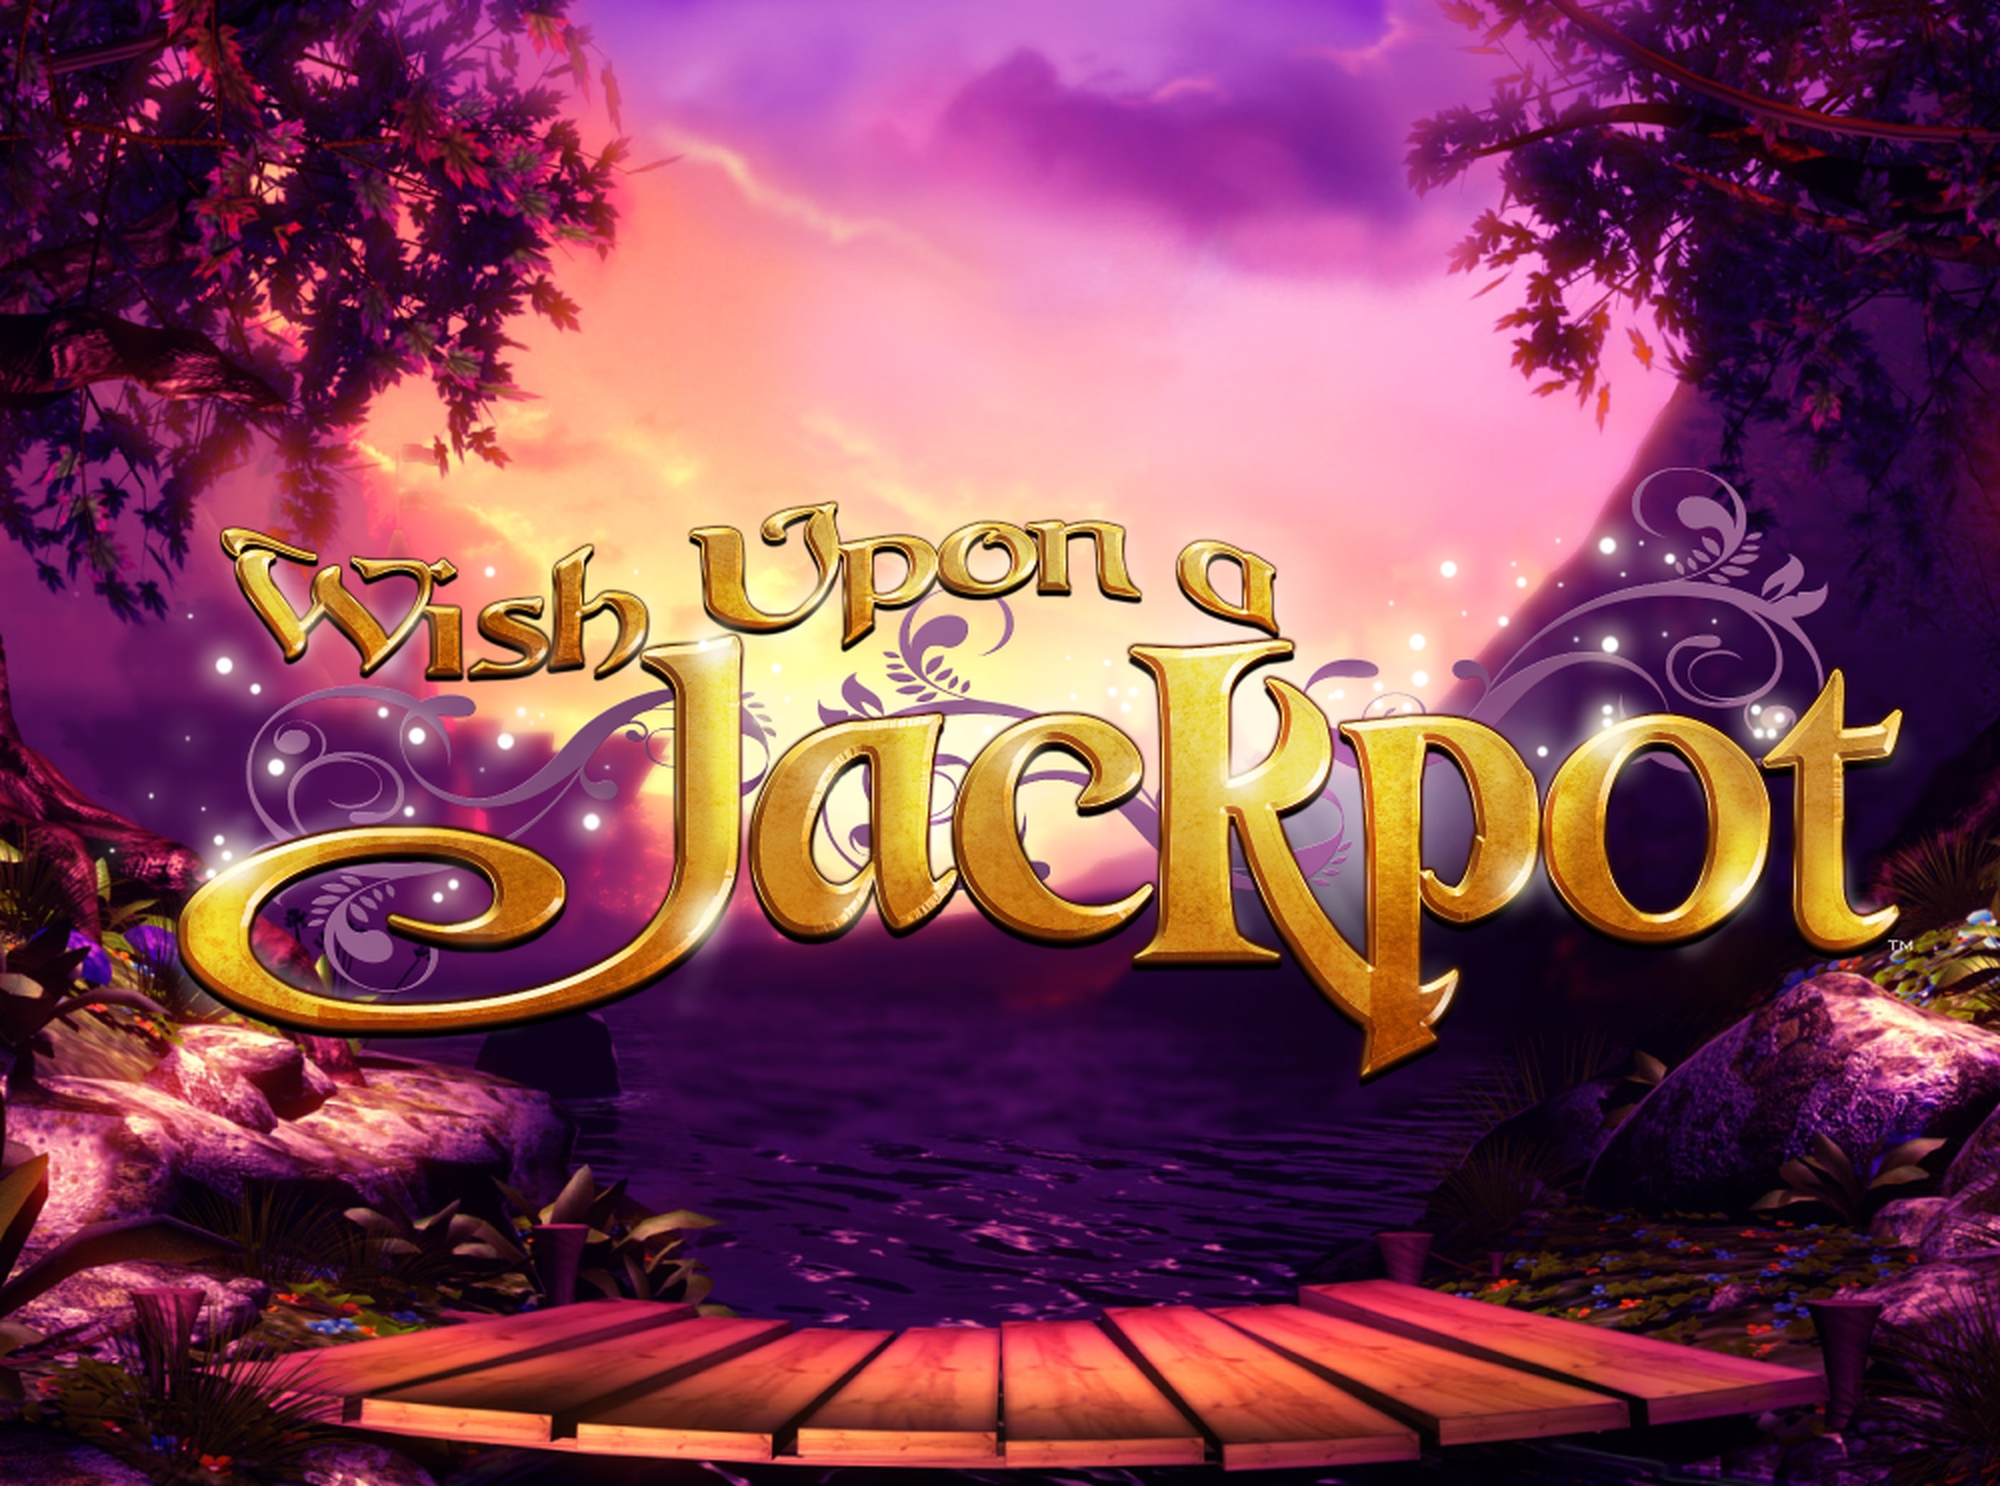 The Wish Upon a Jackpot Online Slot Demo Game by Blueprint Gaming